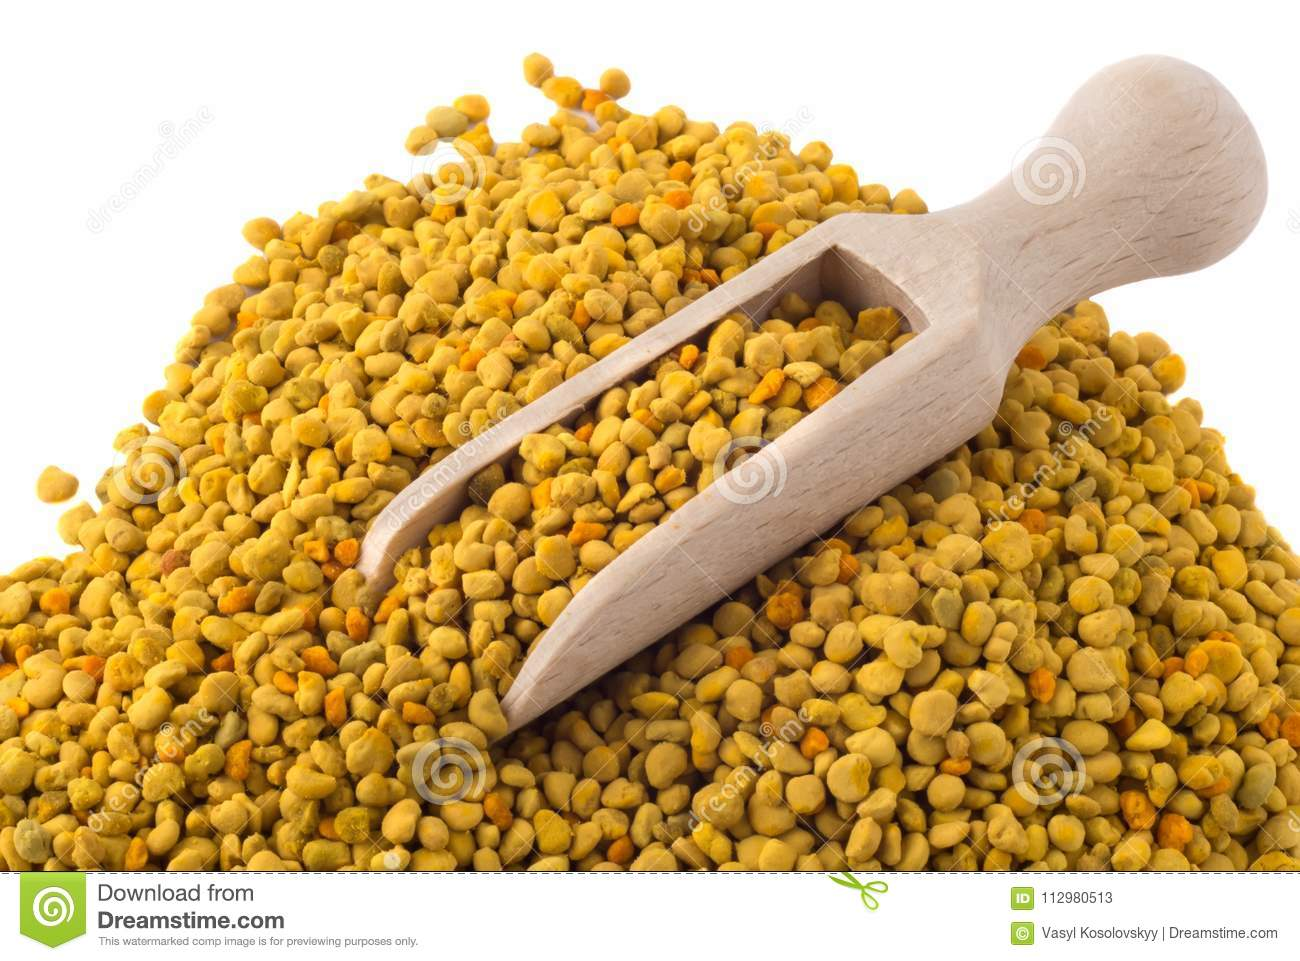 Flower bee pollen and a wooden slove is isolated on a white background. Beekeeping products. Apitherapy.